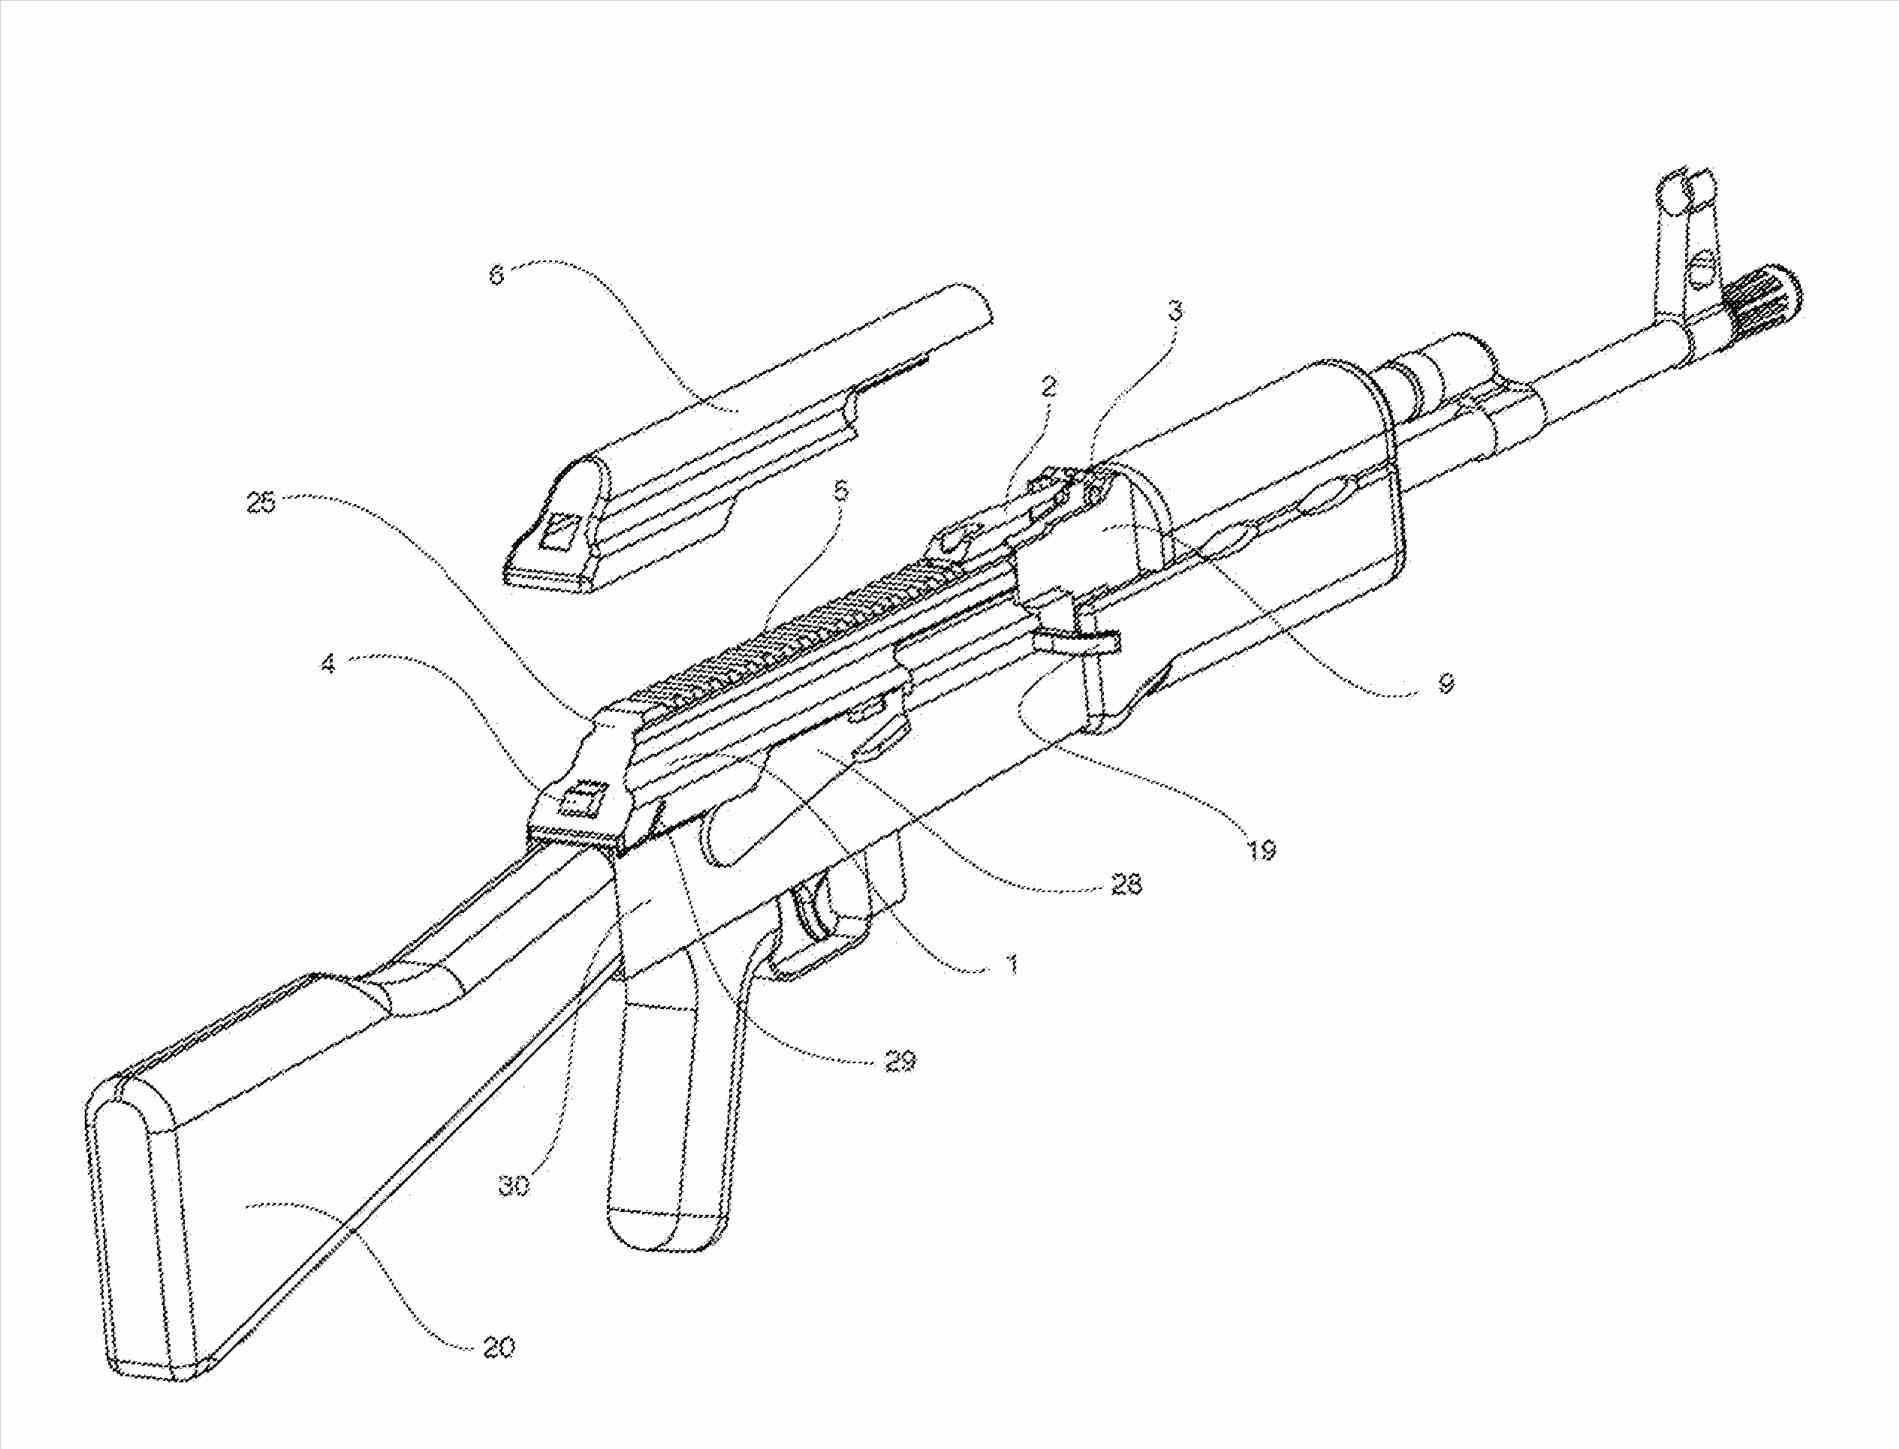 Ak 47 Drawing at GetDrawings.com | Free for personal use Ak ... Ak Schematic on